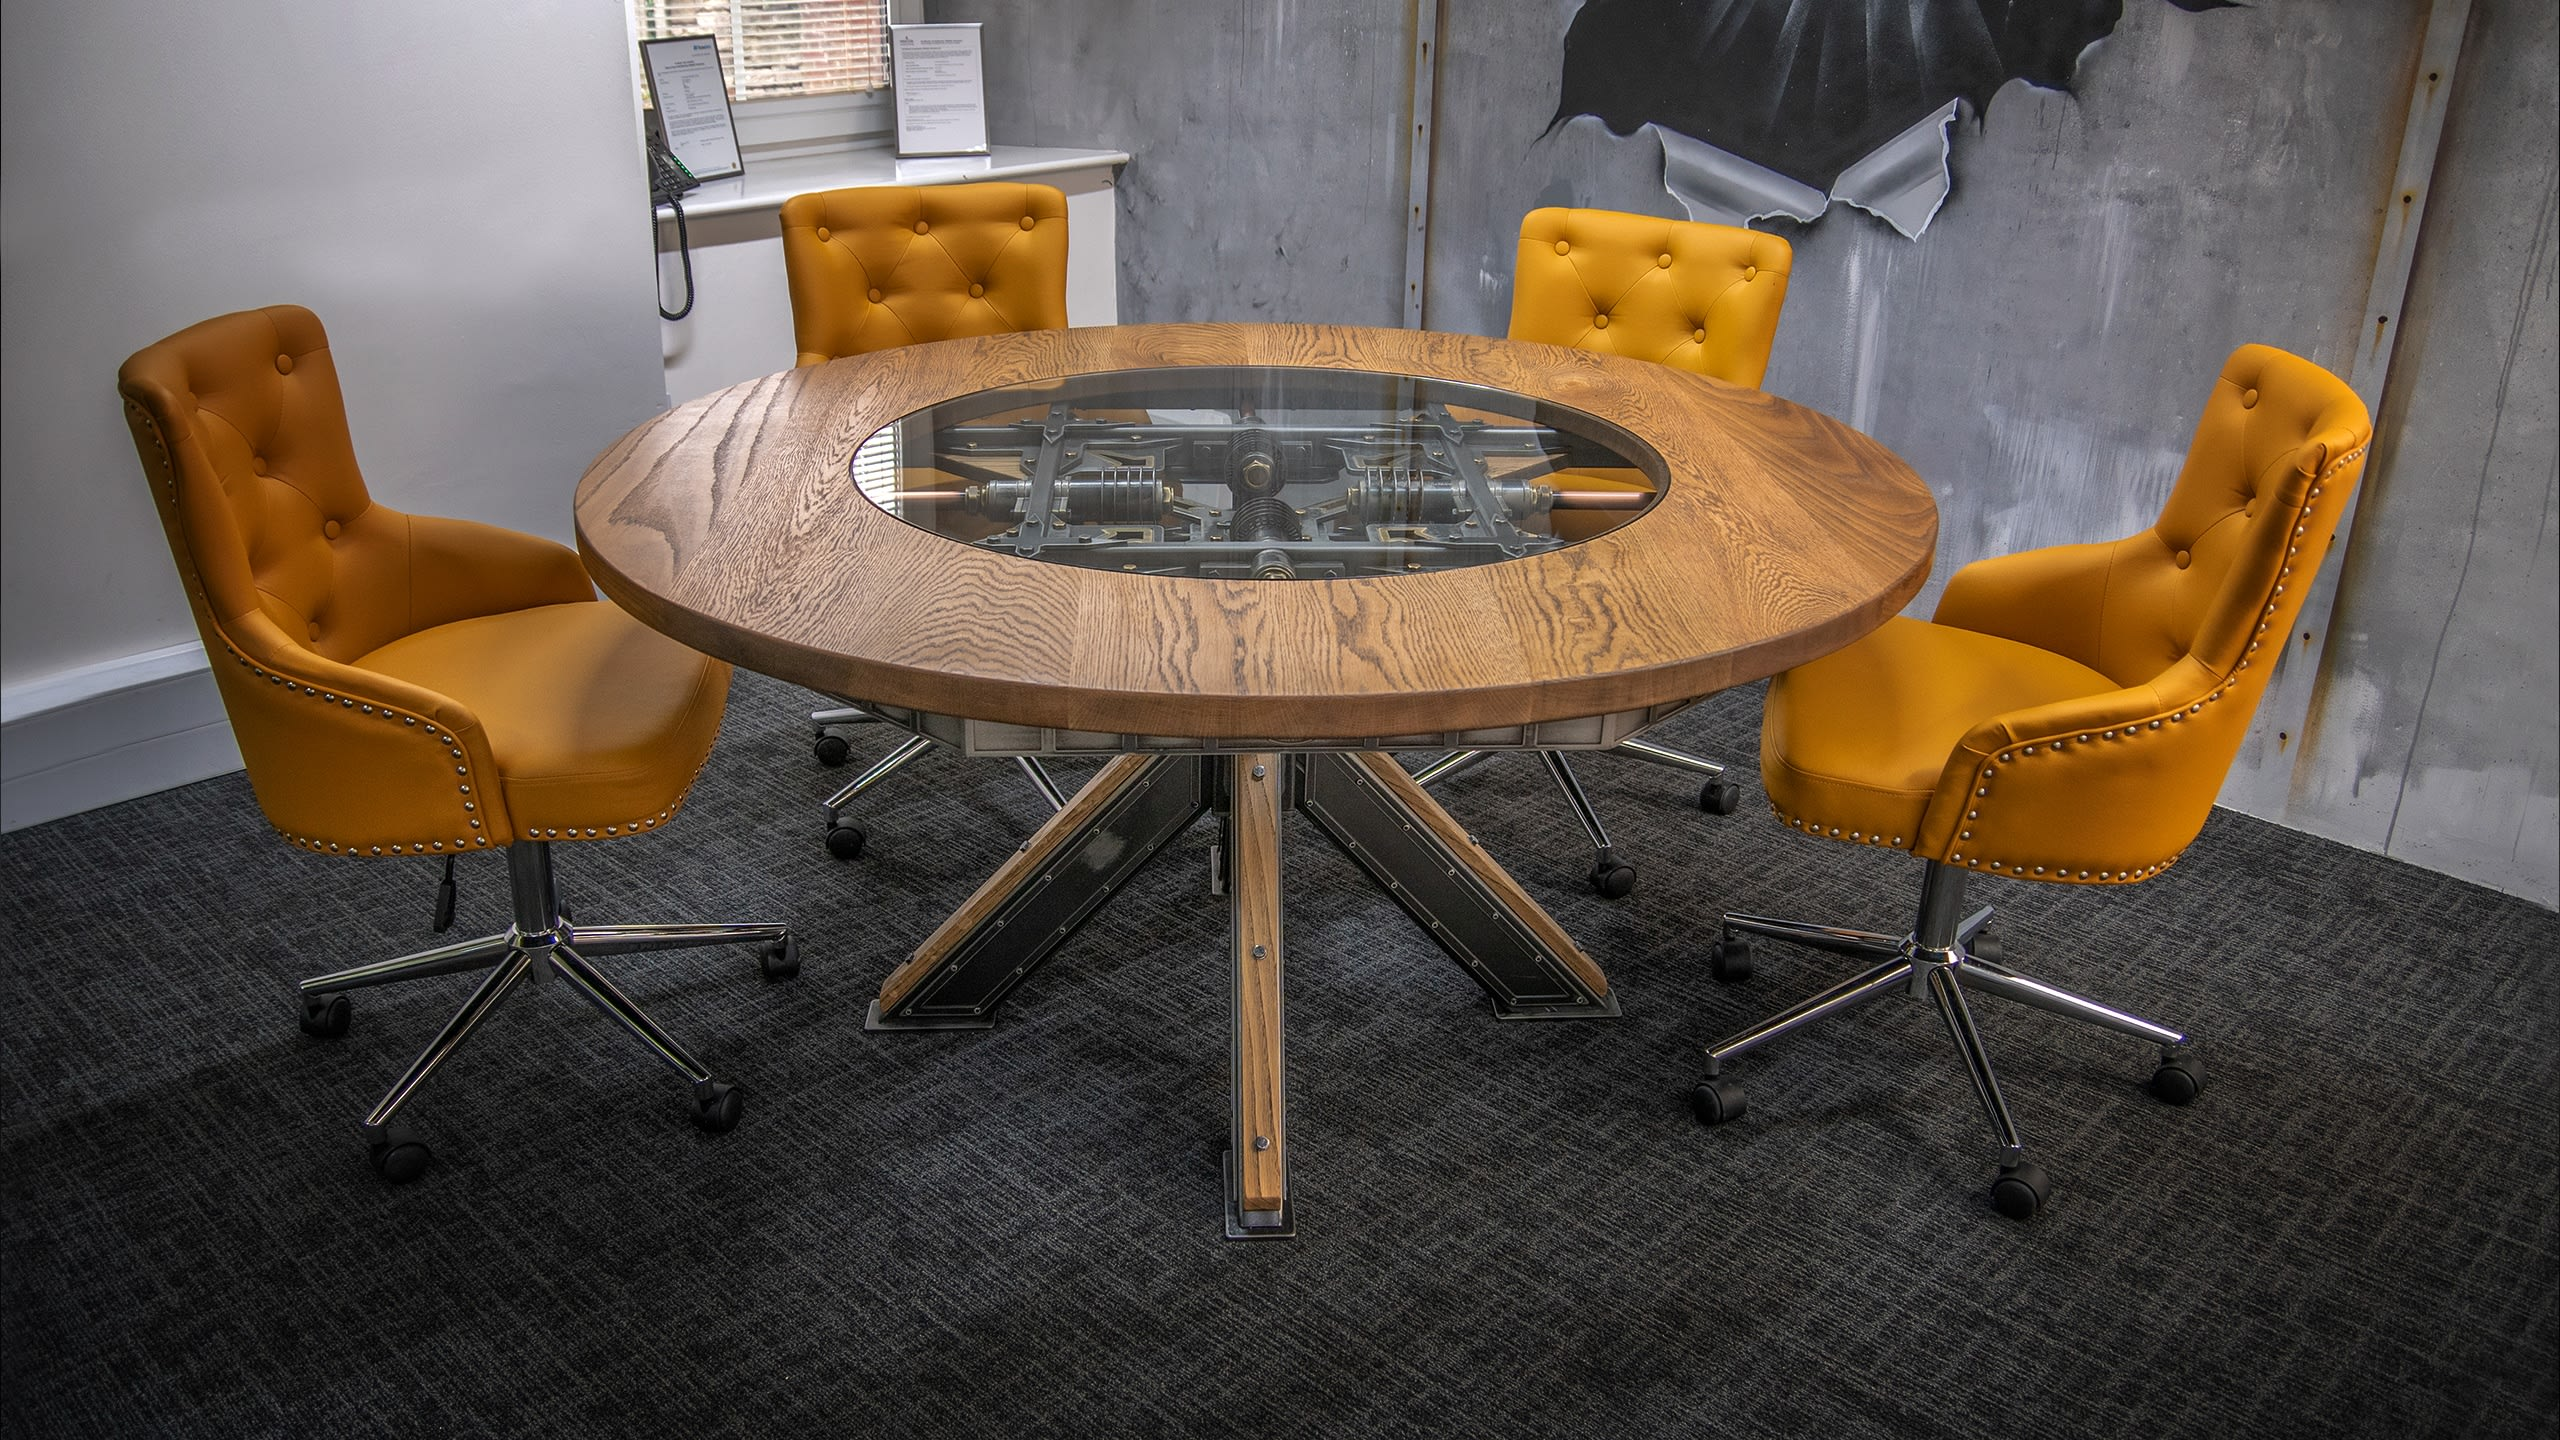 Steel Vintage - Steampunk Round Table - Industrial Furniture